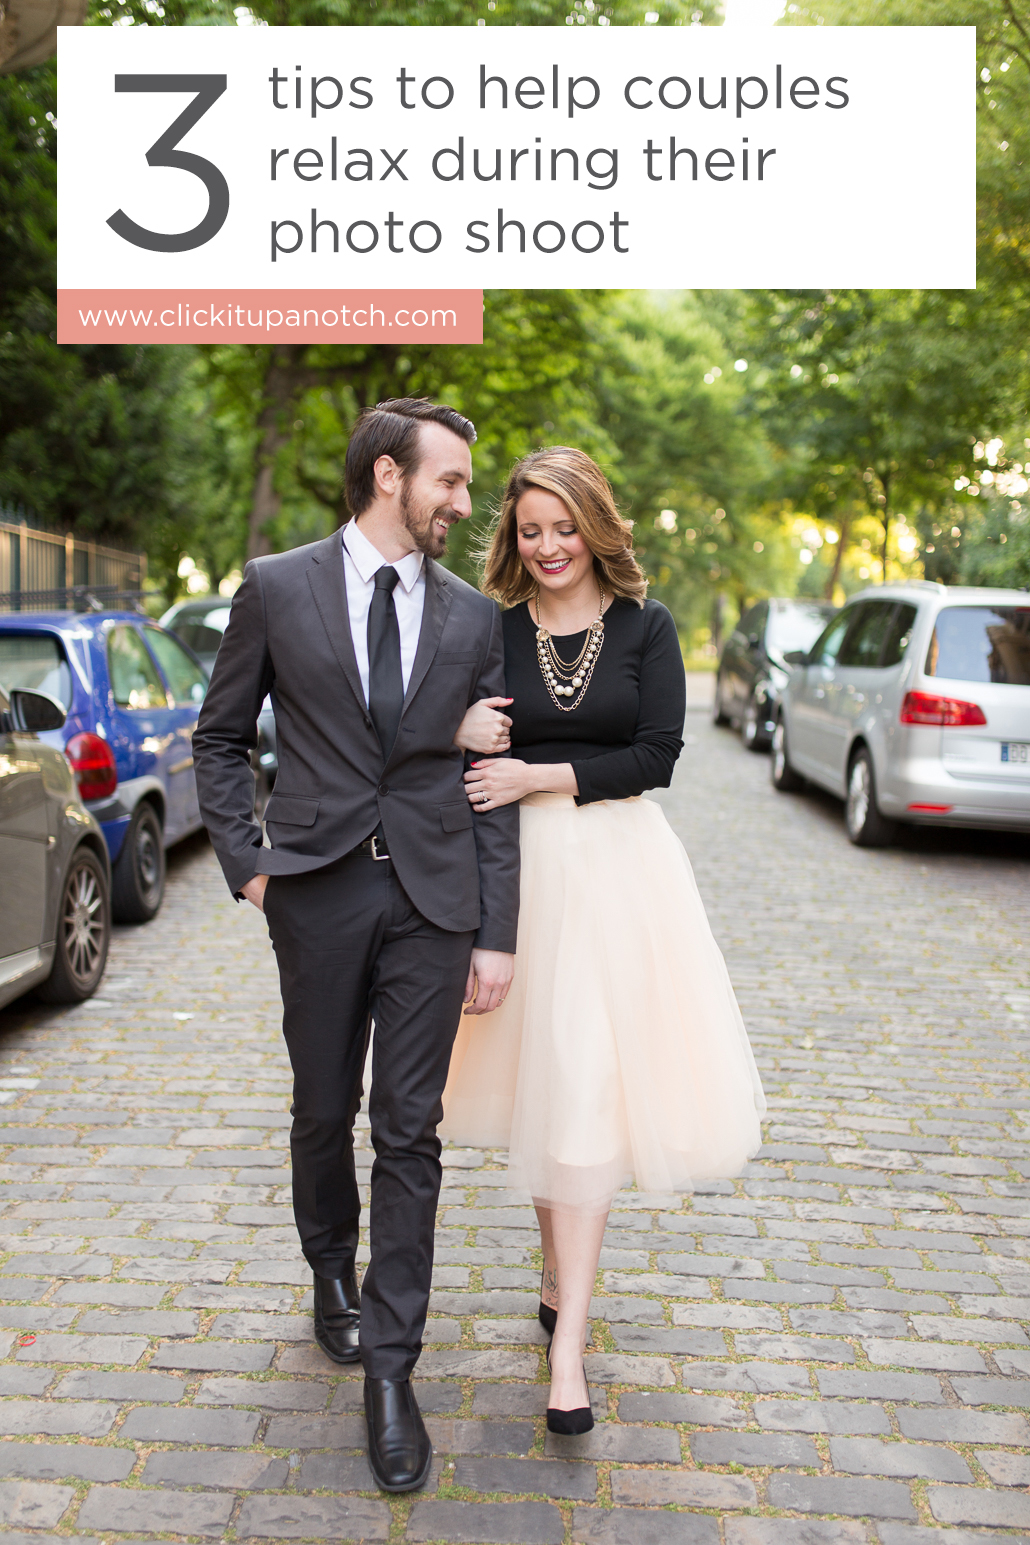 Love the first tip about getting them to move! Read - 3 Tips to Help Couples Relax During Their Photo Shoot